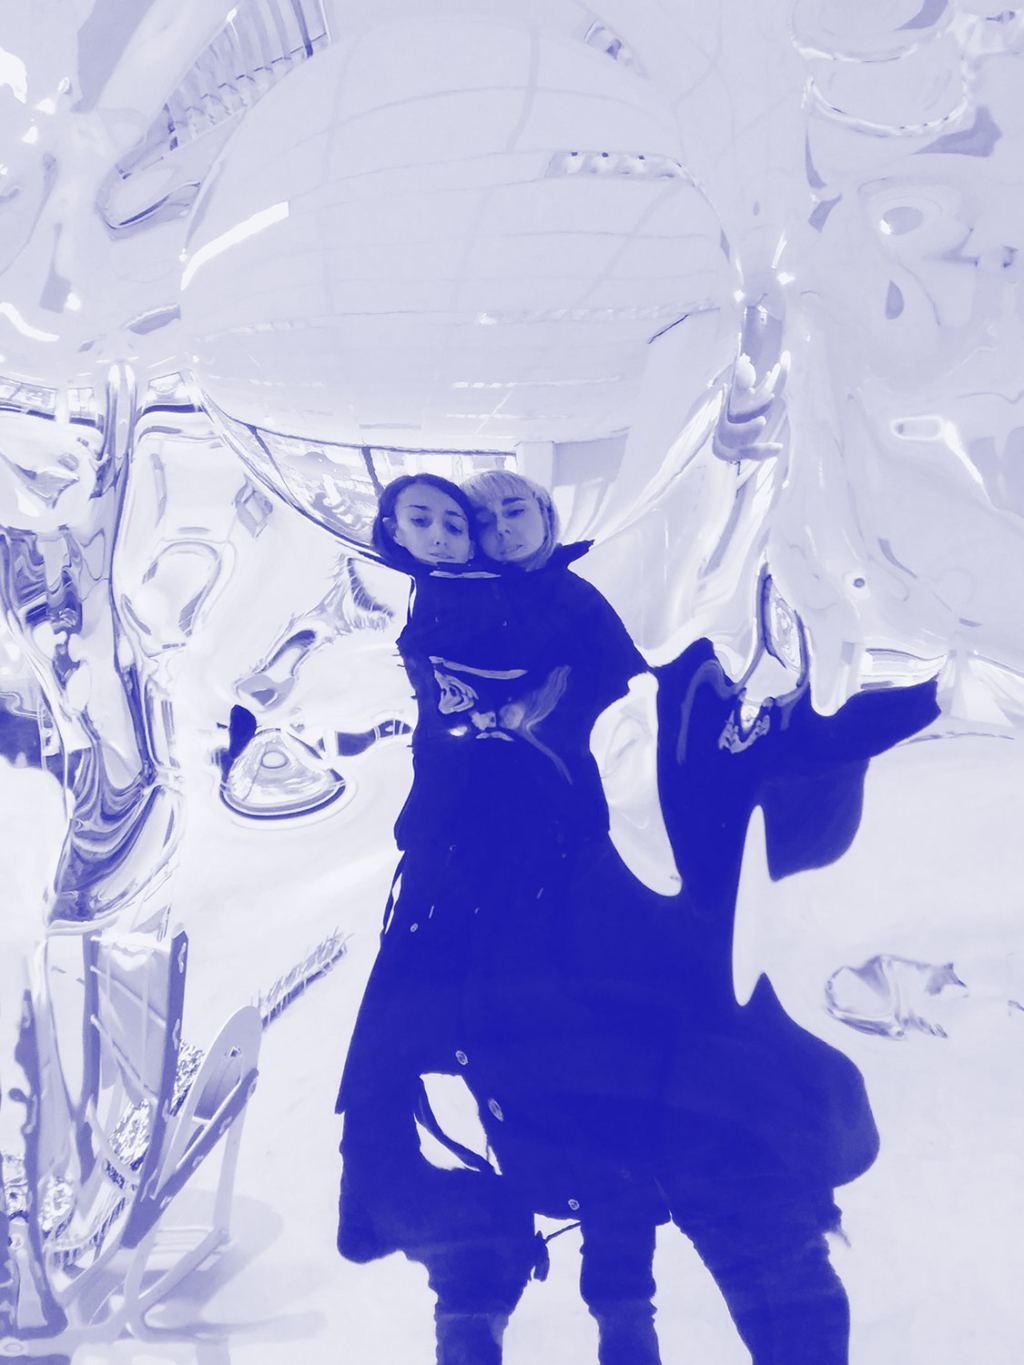 What The studio